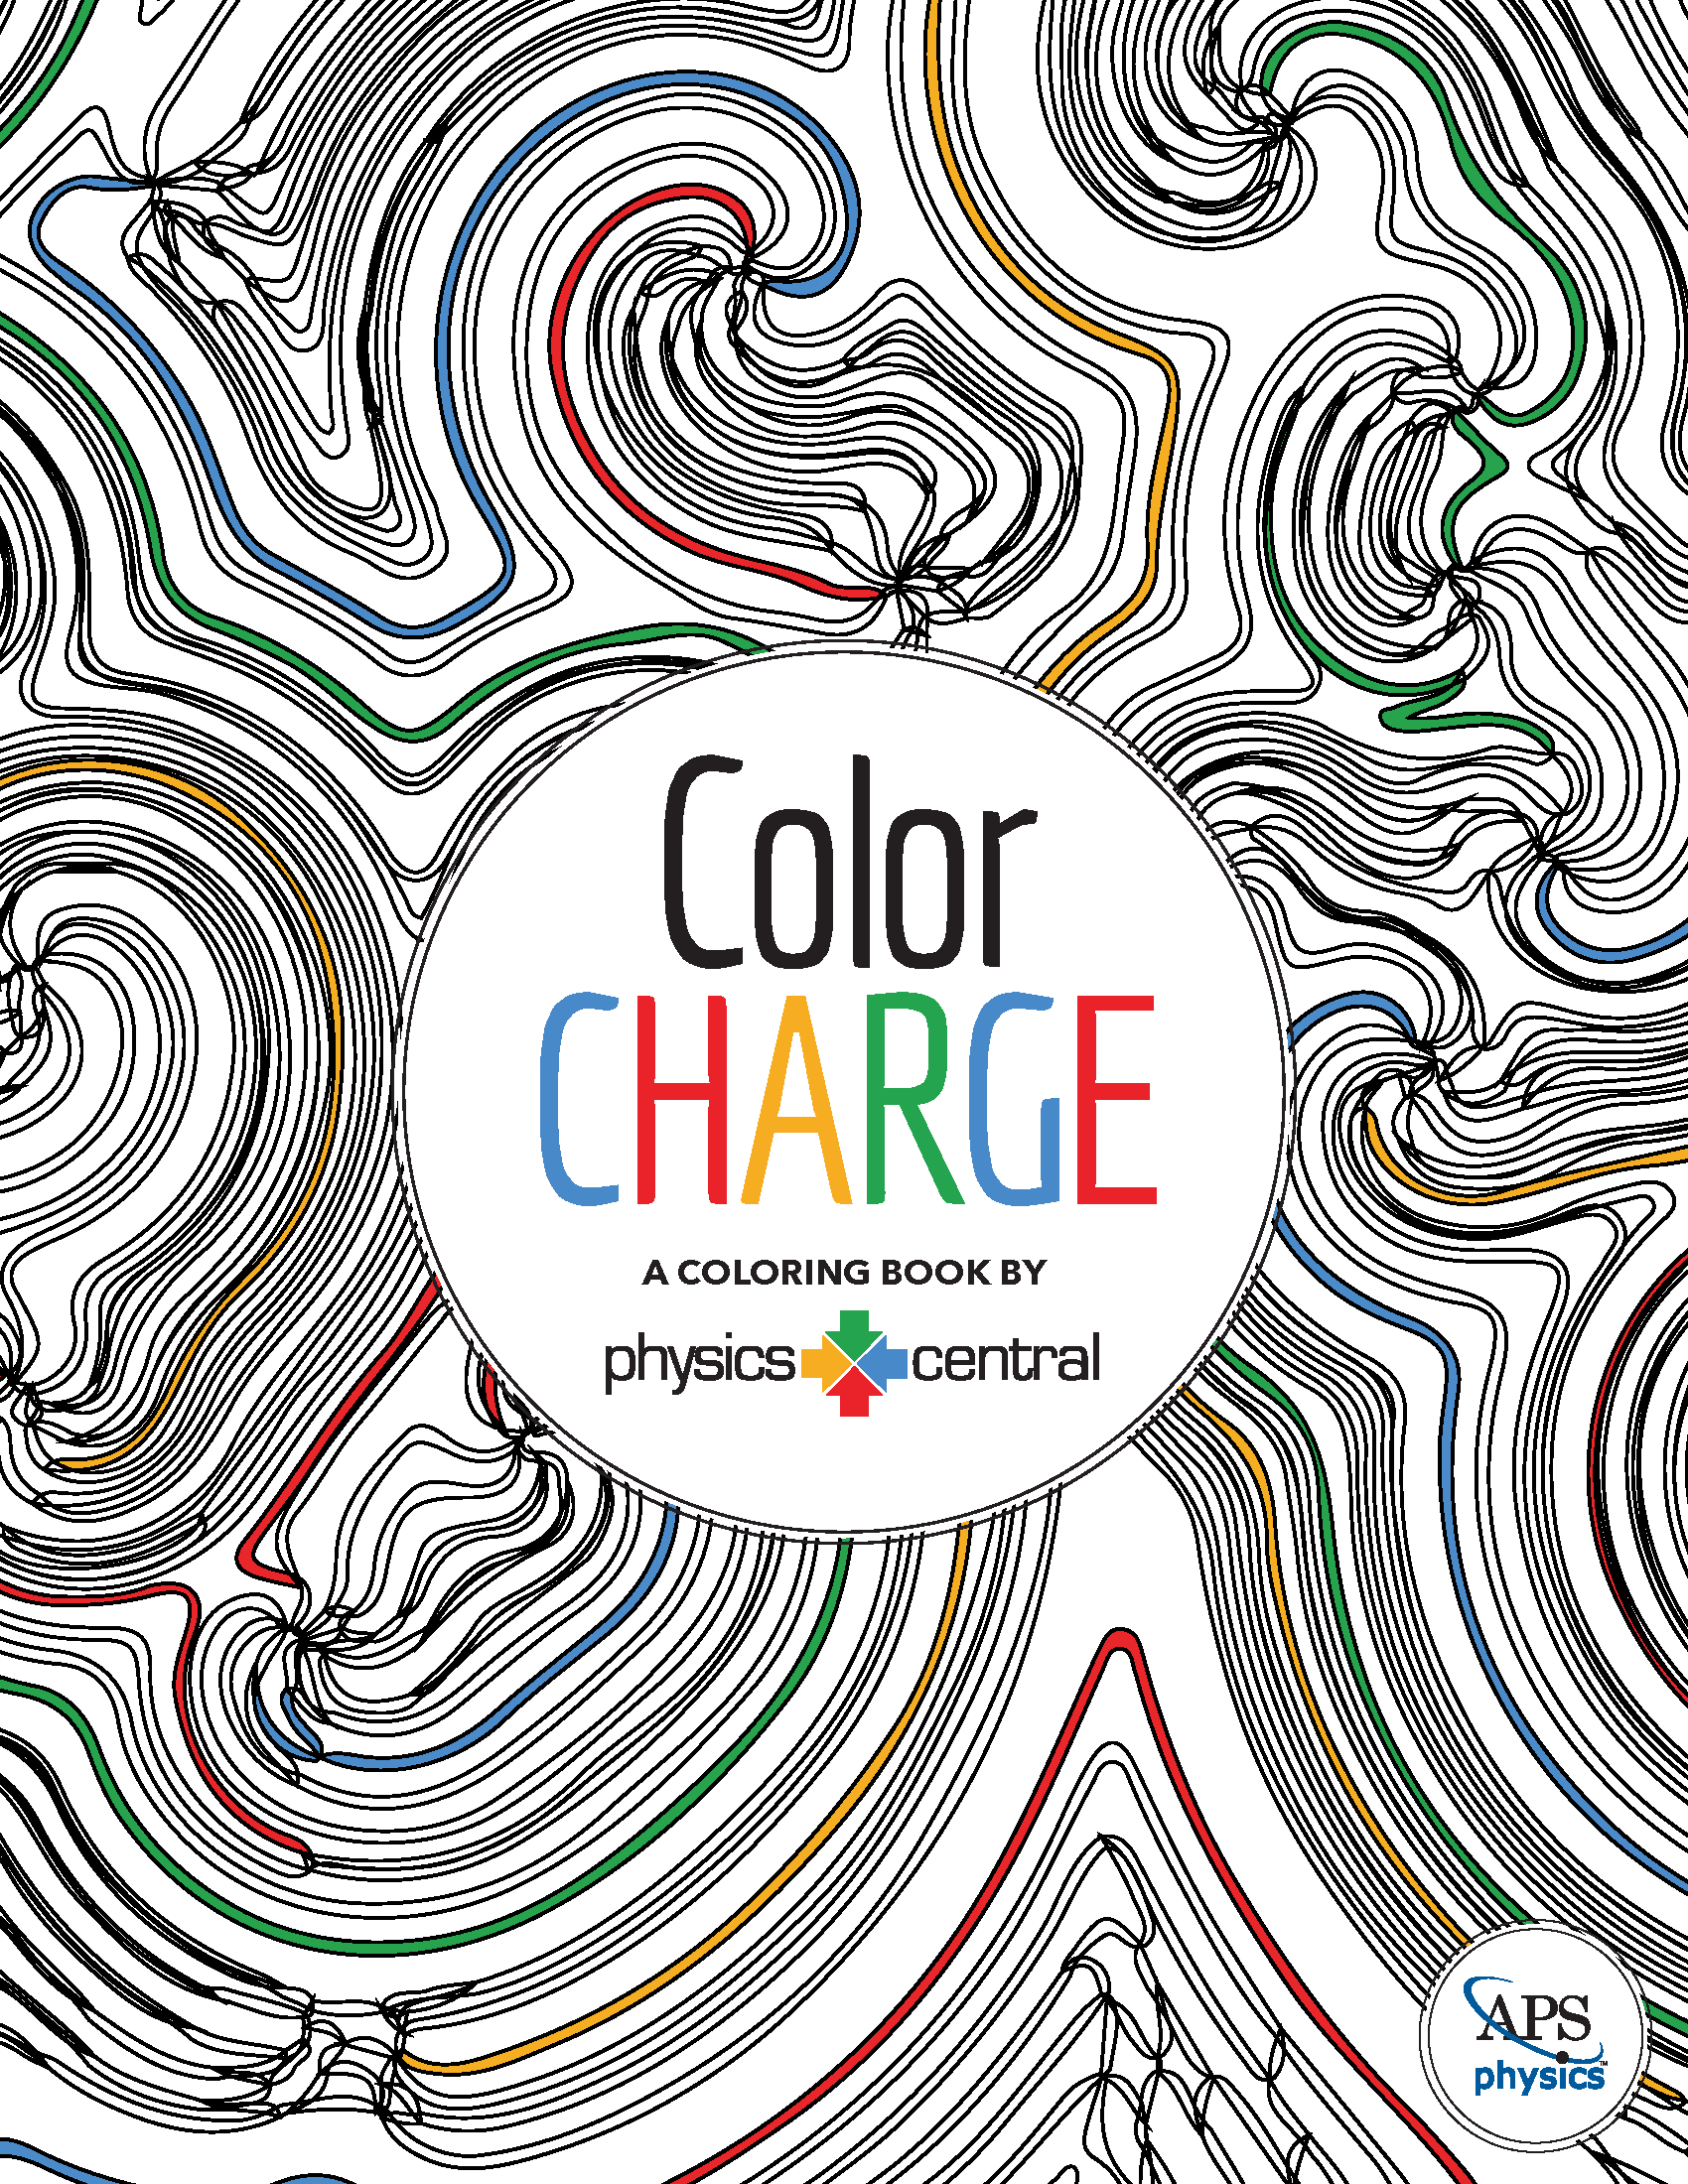 View and download PhysicsCentral's first adult coloring book, Color Charge!